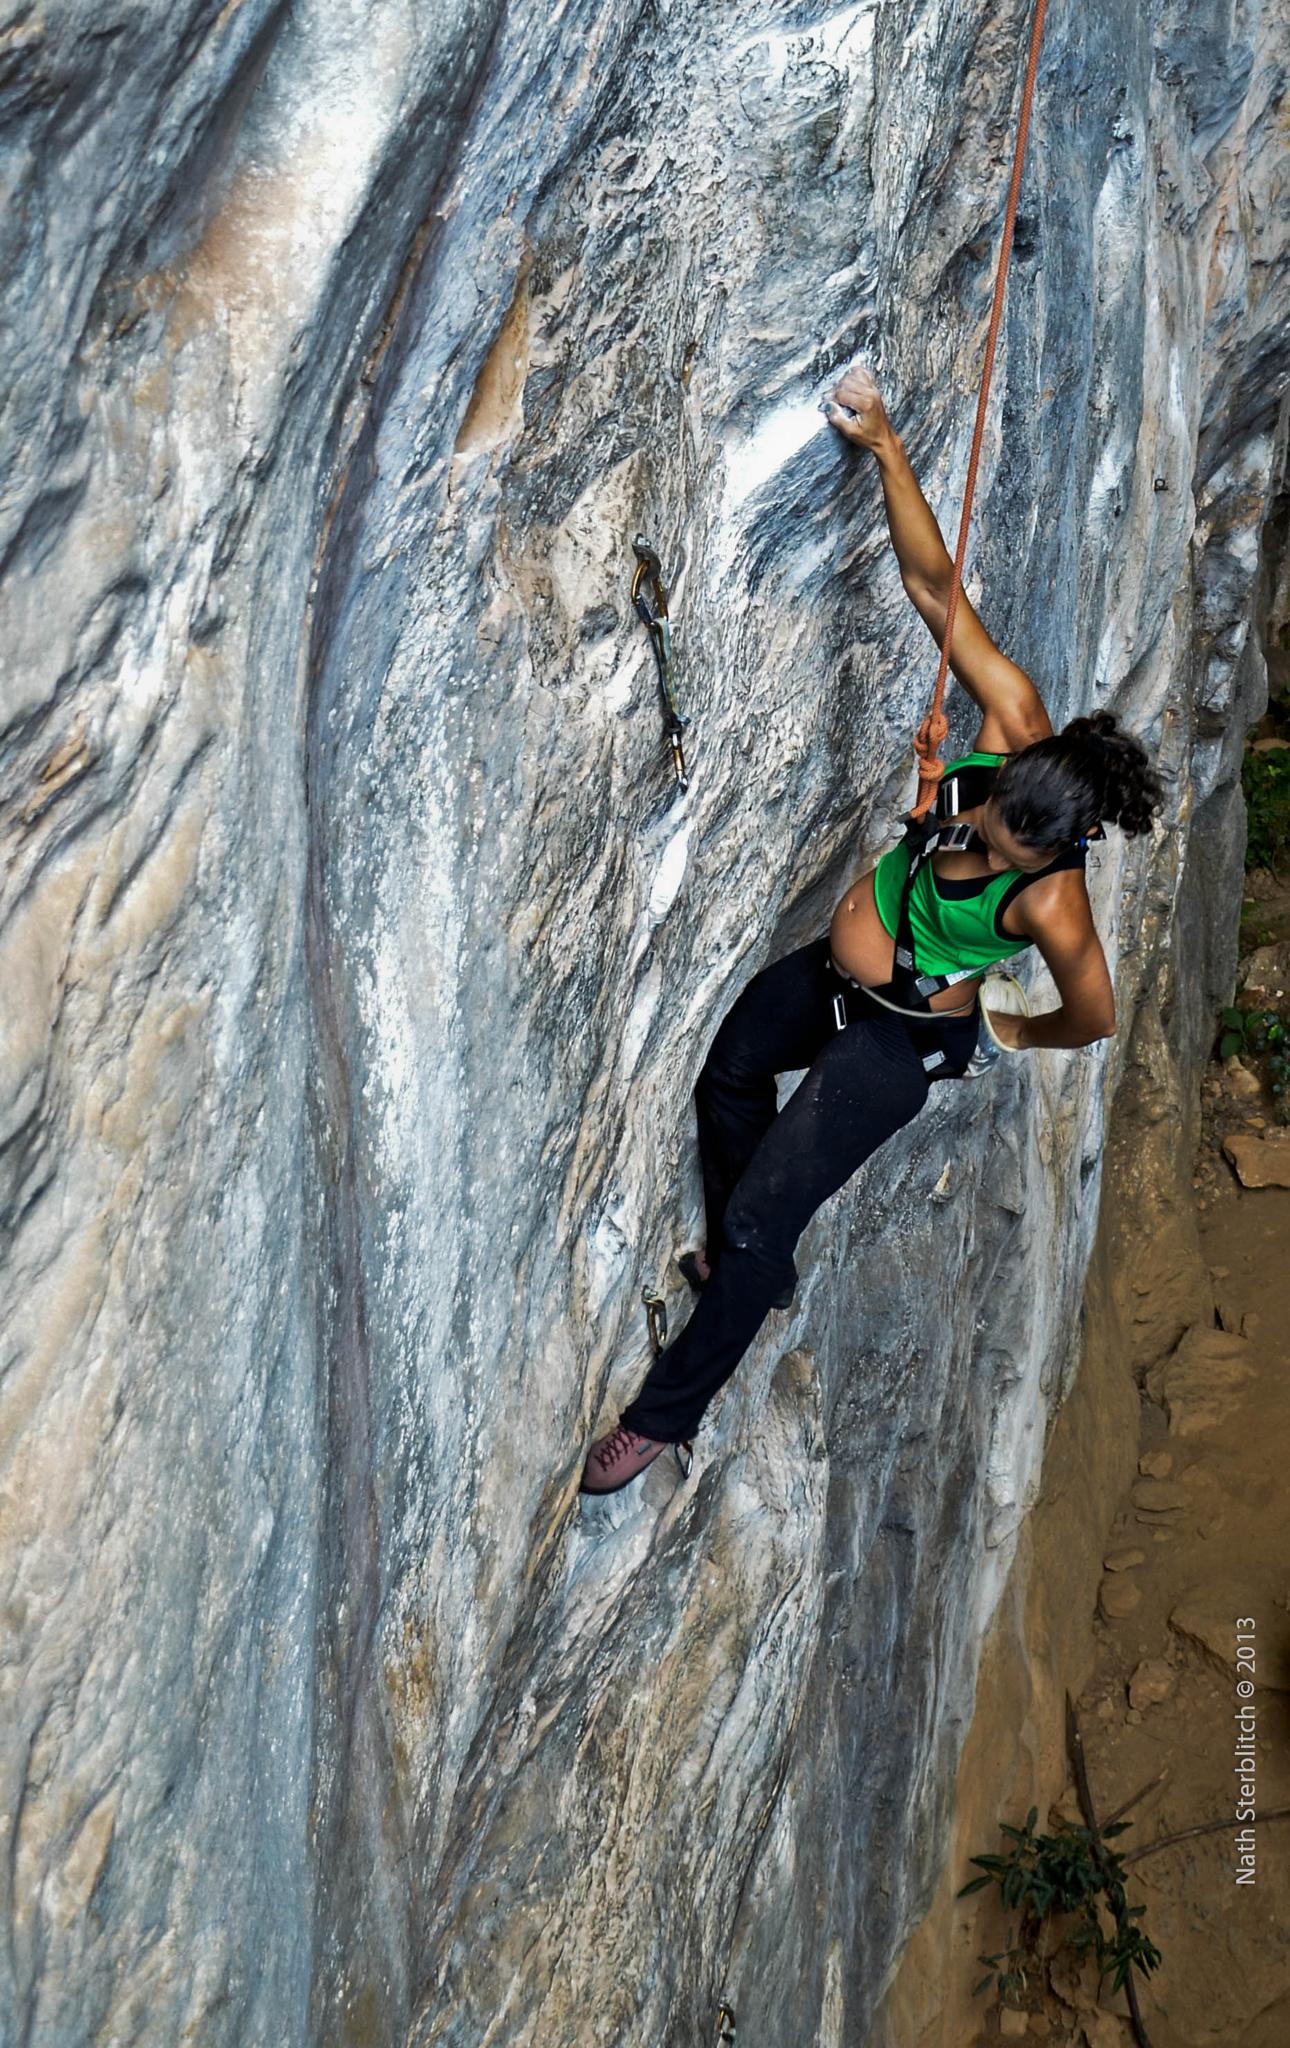 Mara Imbellone, pregnant, climbing in Serra do Cipó by nathsterblitch